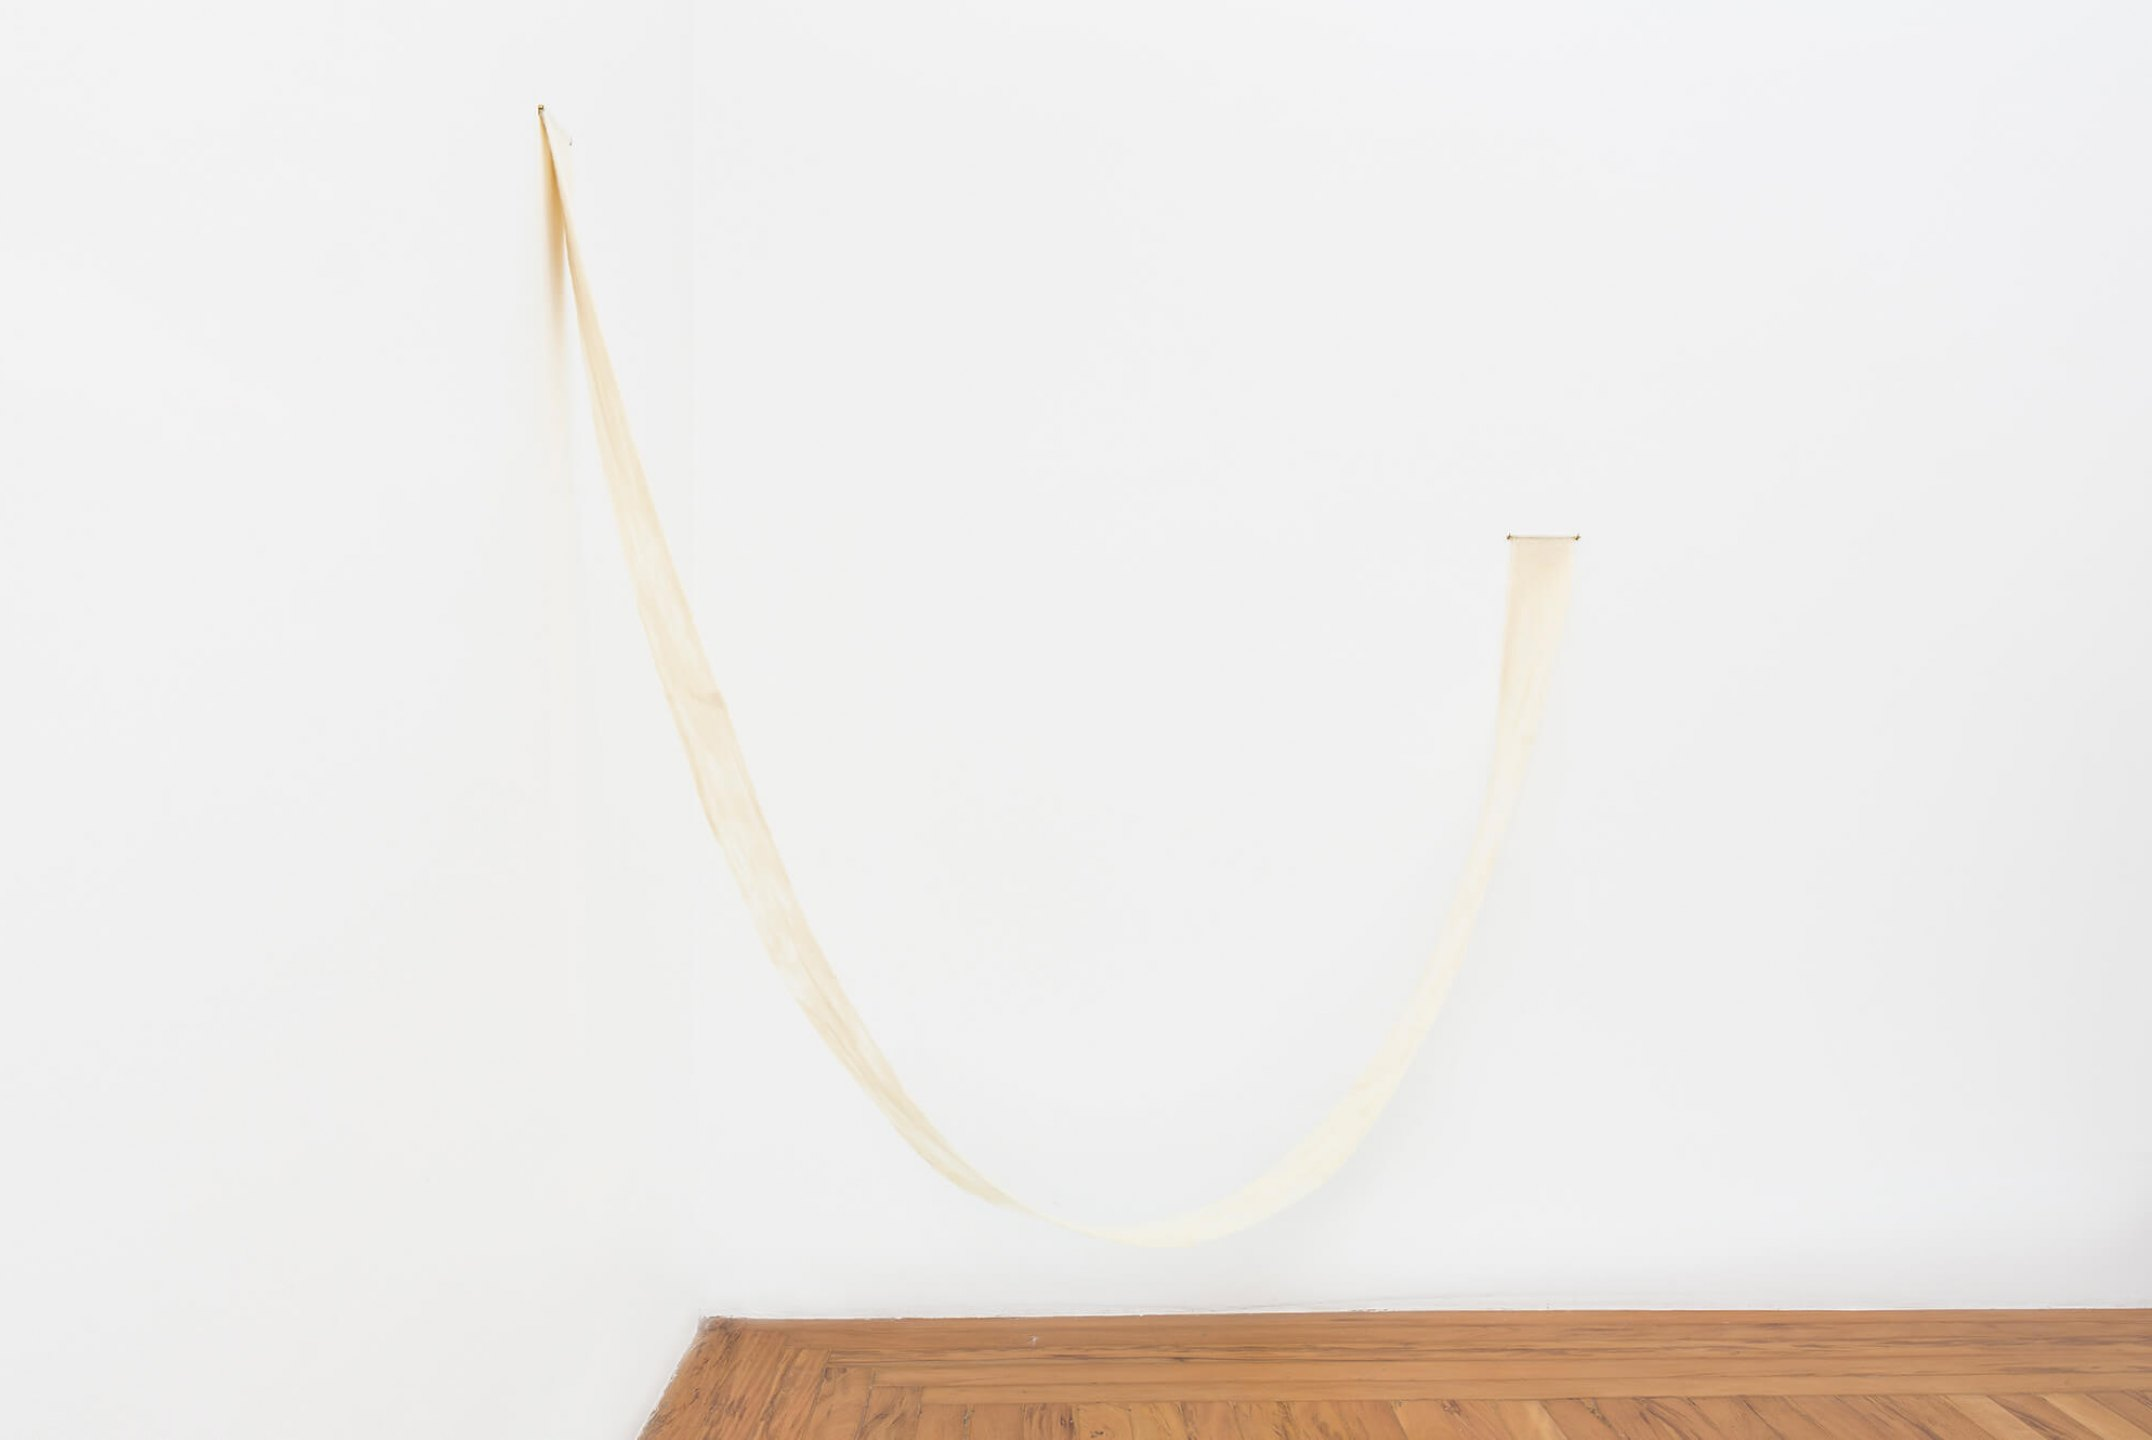 Paloma Bosquê, <em>Being #6</em>, 2015, wool felted by hand, dyed bee wax and brass holder, 358 × 15 cm - Mendes Wood DM